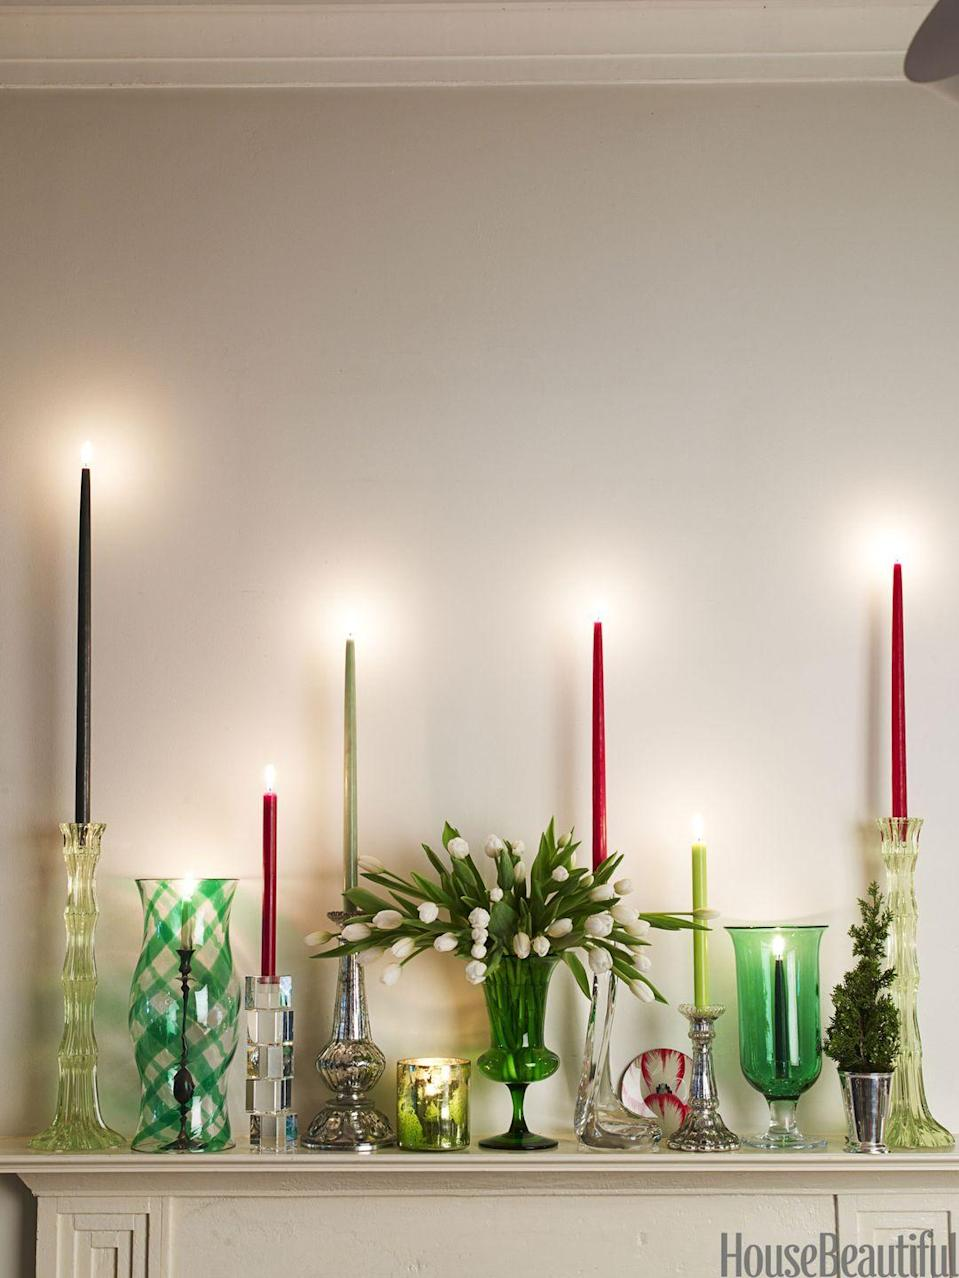 "<p>Instead of a garland, dress up a mantel with a <a href=""https://www.housebeautiful.com/room-decorating/colors/tips/g492/red-and-green-christmas-decorations/"" rel=""nofollow noopener"" target=""_blank"" data-ylk=""slk:mix of candlesticks"" class=""link rapid-noclick-resp"">mix of candlesticks</a> — tall, small, mercury glass, crystal. Instead of ivory candles, opt for red, cranberry, and shades of green. </p>"